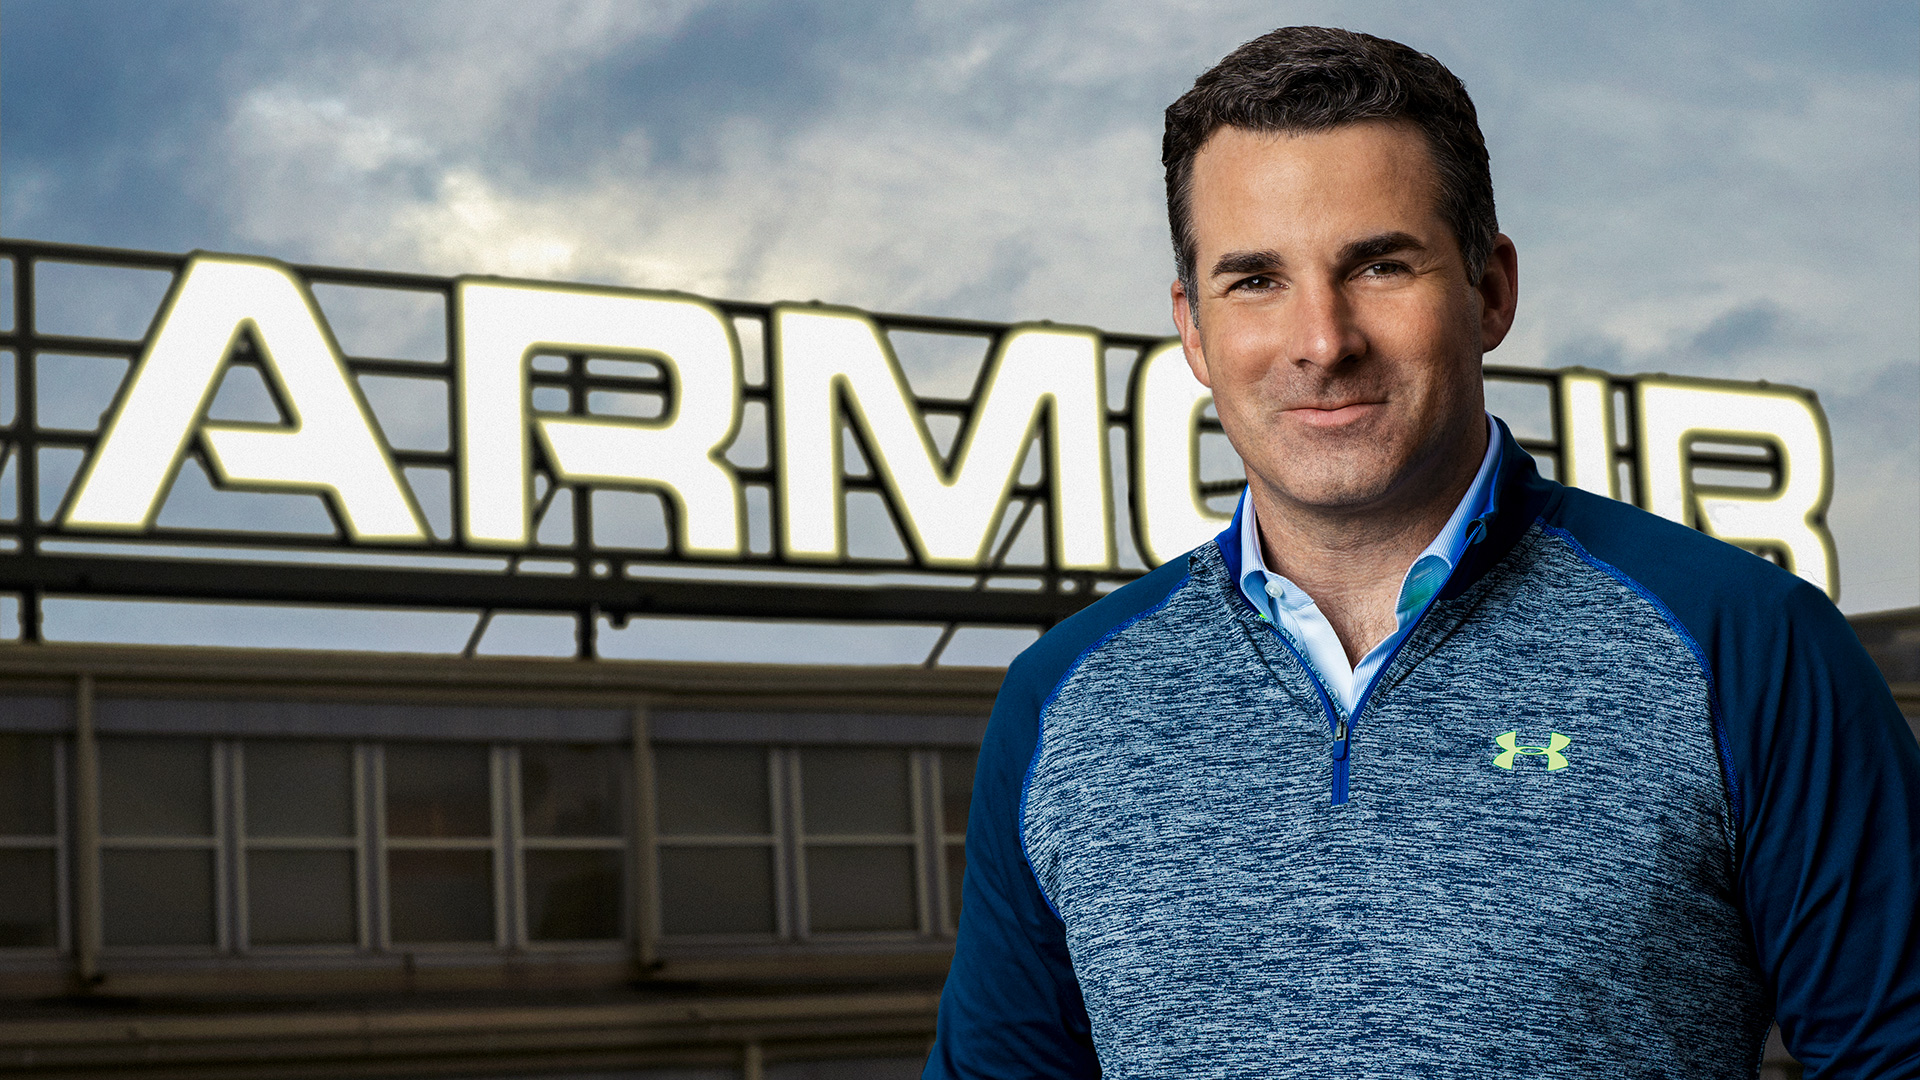 Under Armour CEO Kevin Planks wont name competitors recommend